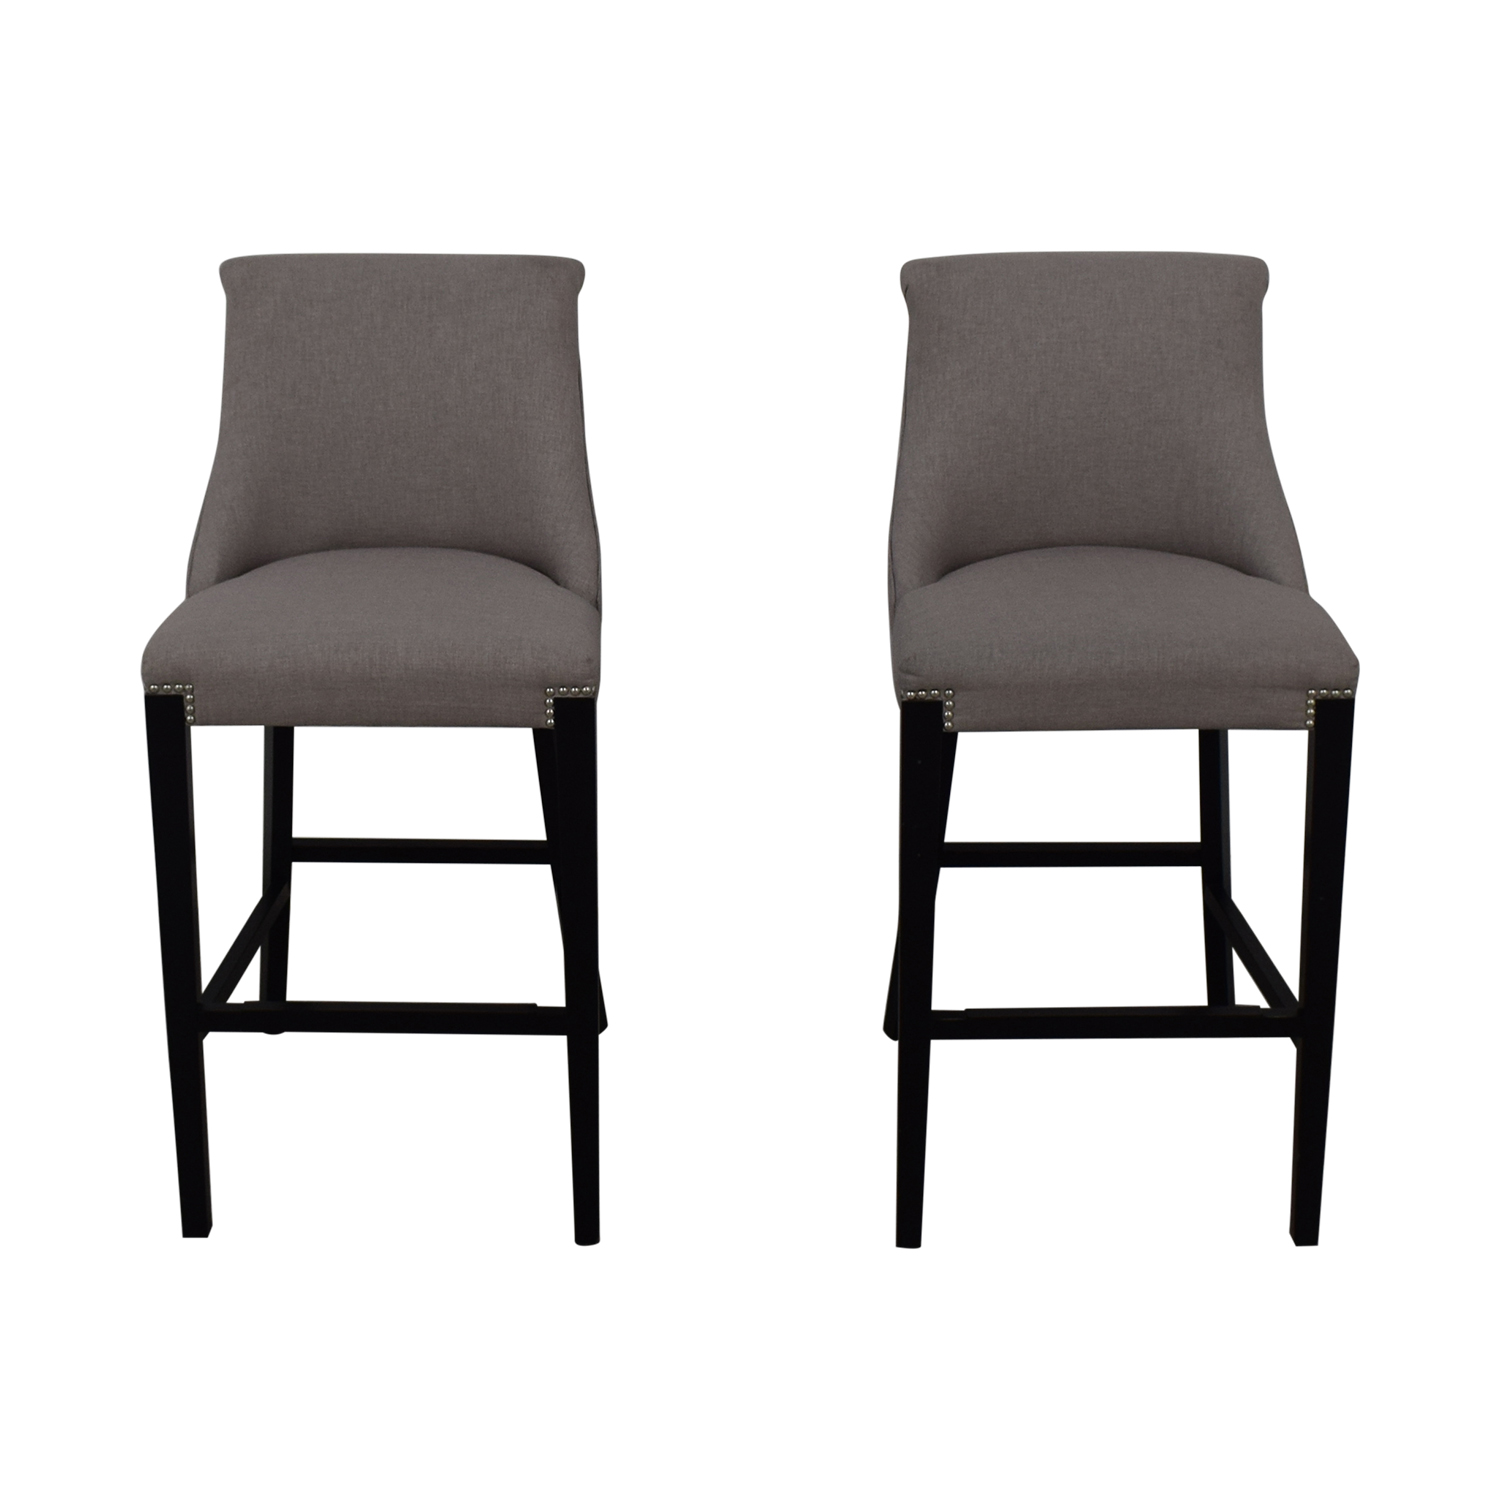 Grey Bar Stools dimensions